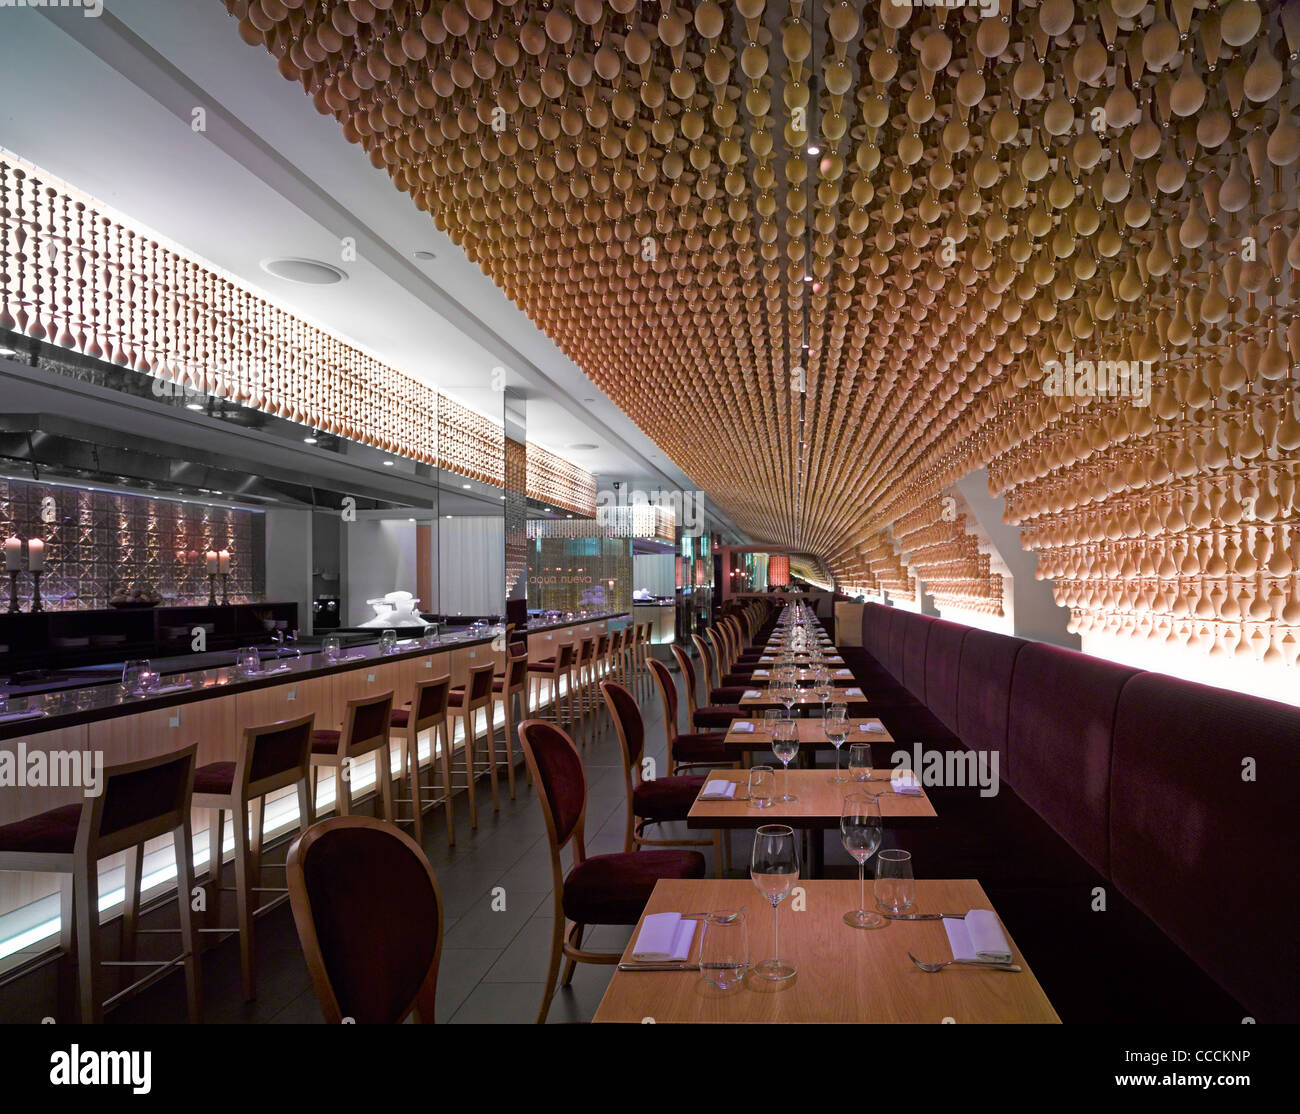 Aqua Restaraunt, London, Glamorous, 2011-overall view in Spanish section - Stock Image